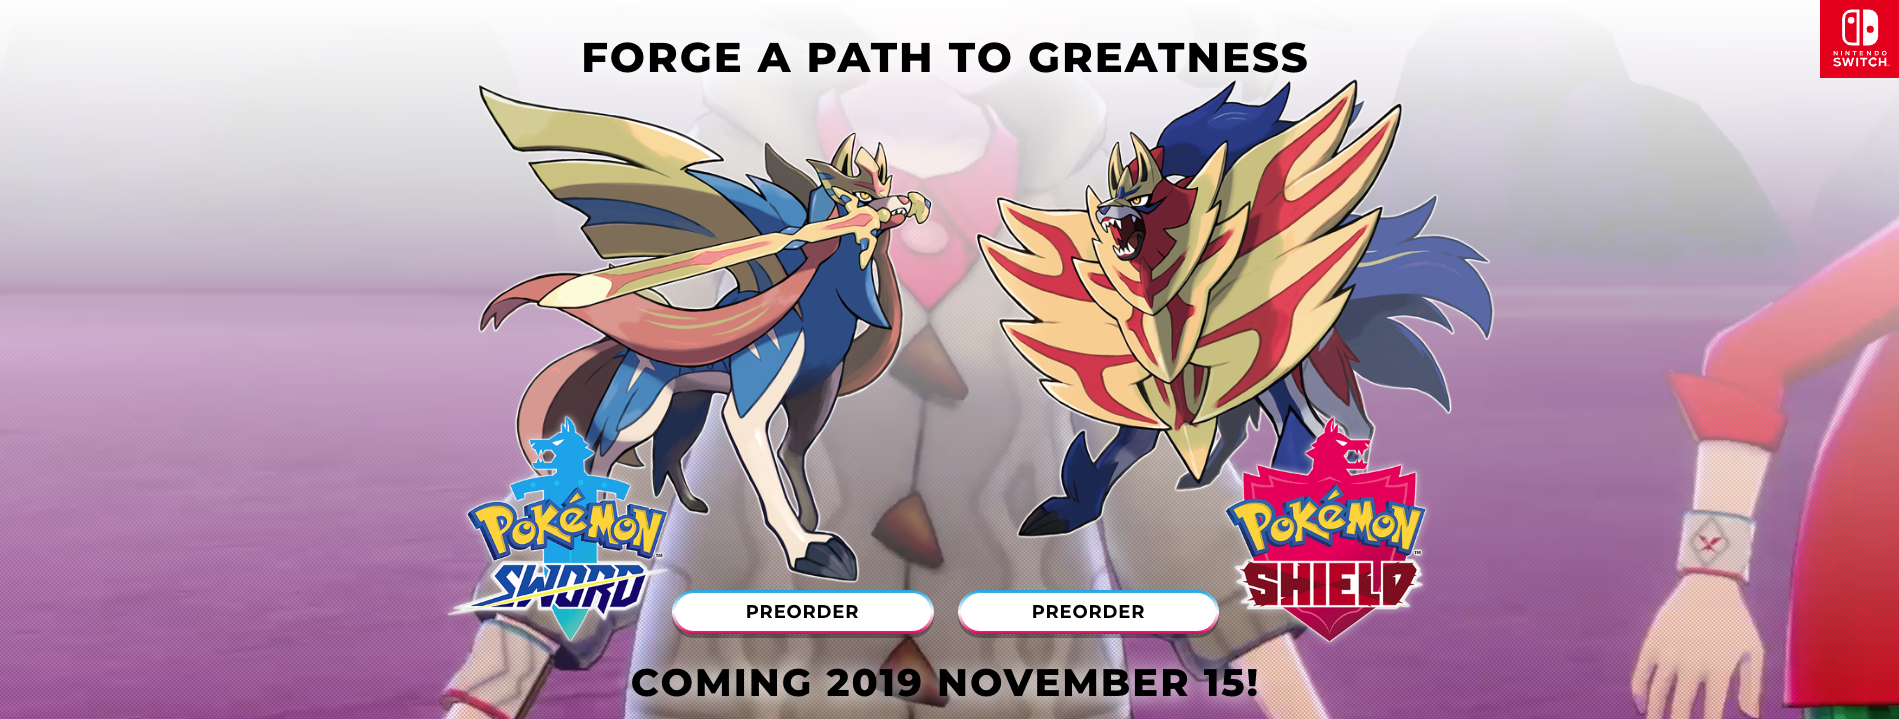 Pokemon Sword And Shield Release Date New Giant Monsters 9to5toys